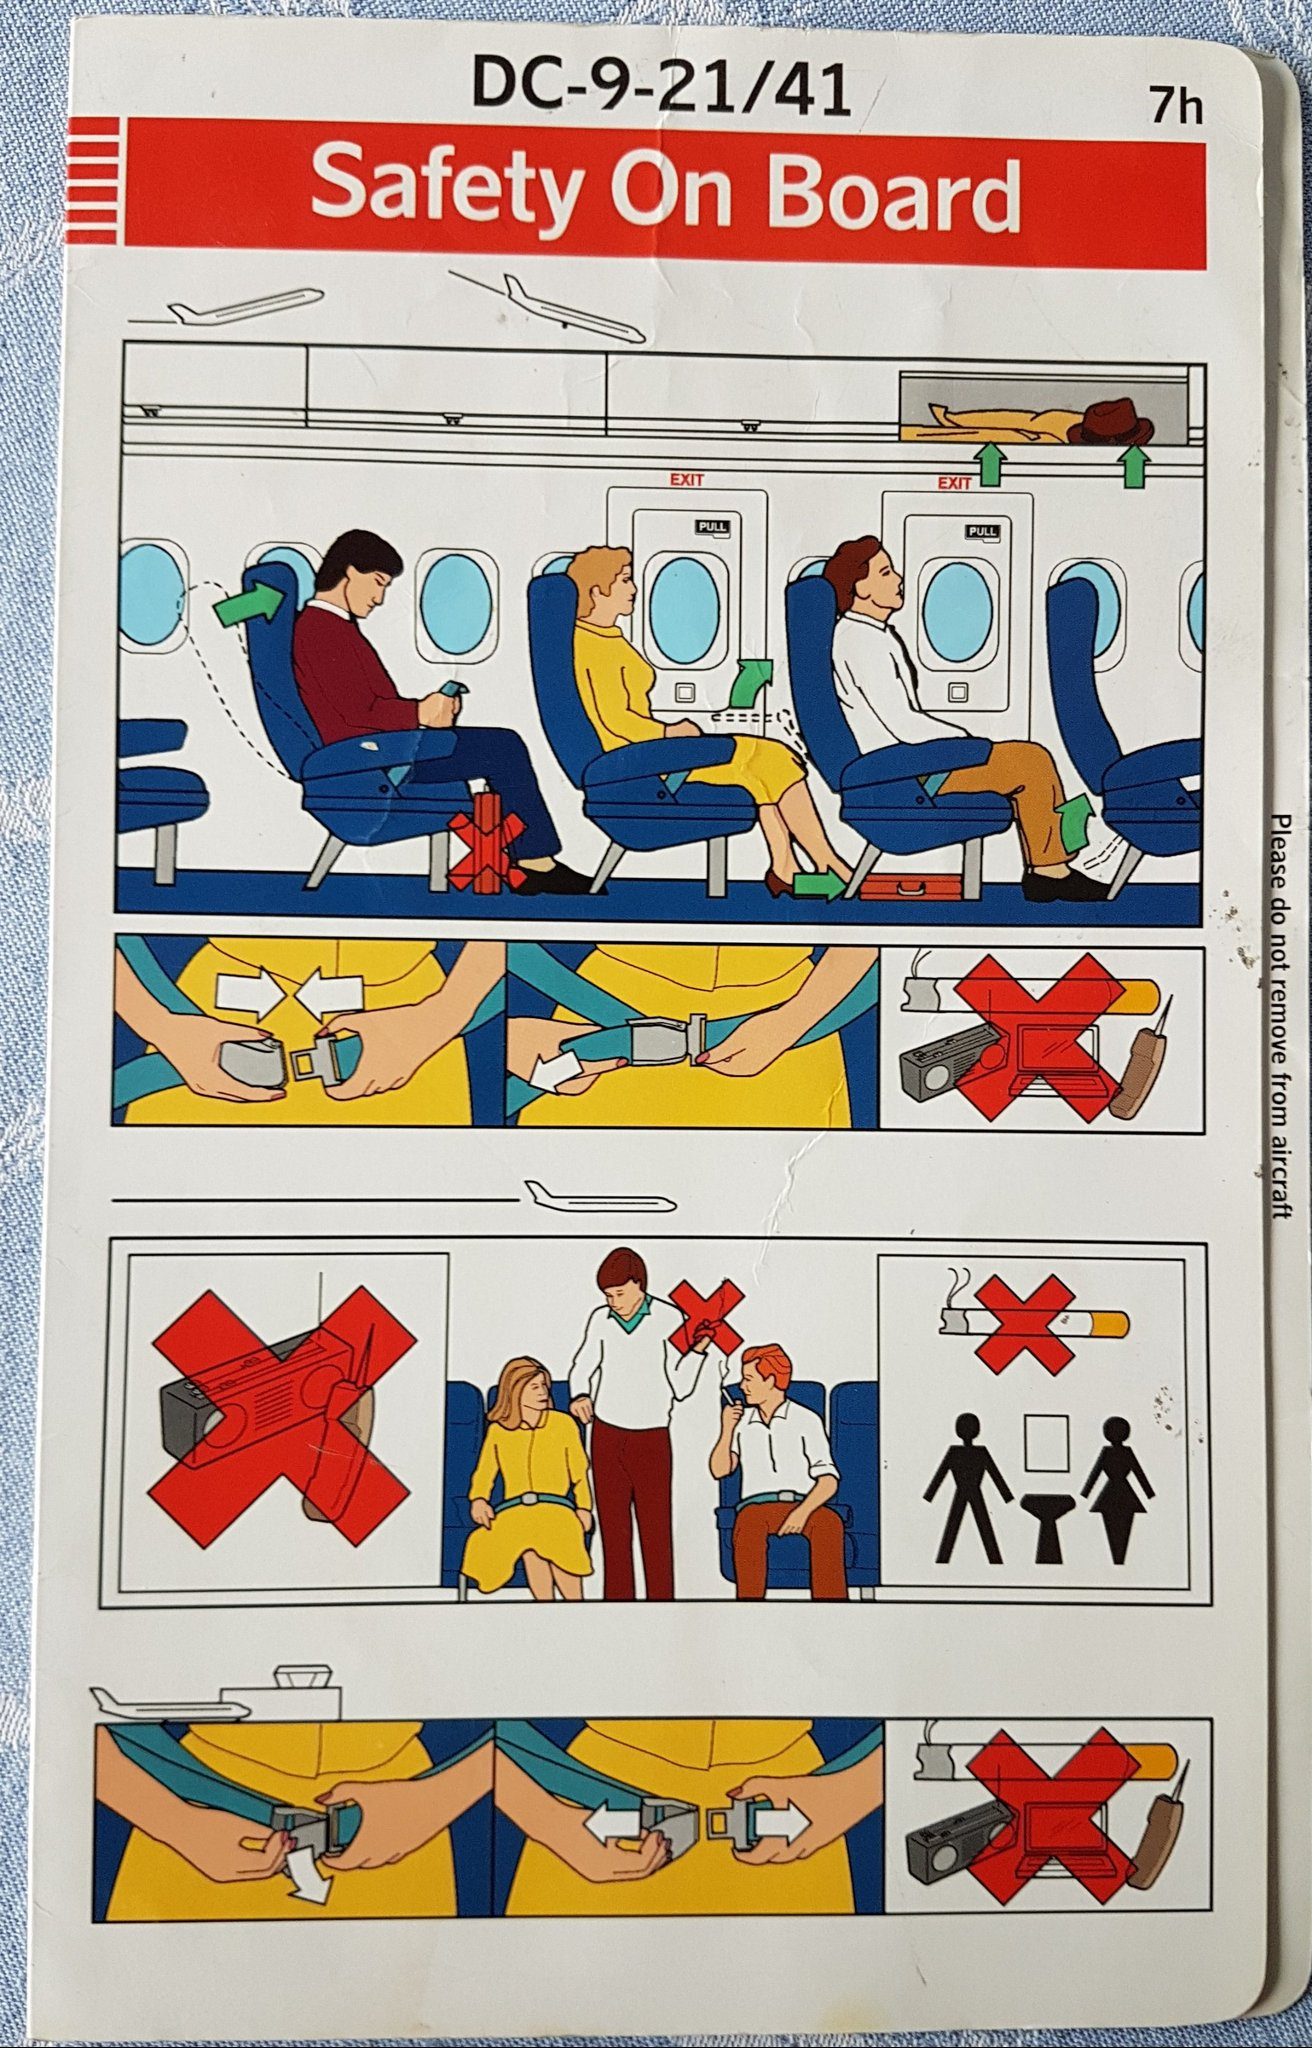 SAS - Safety On Board